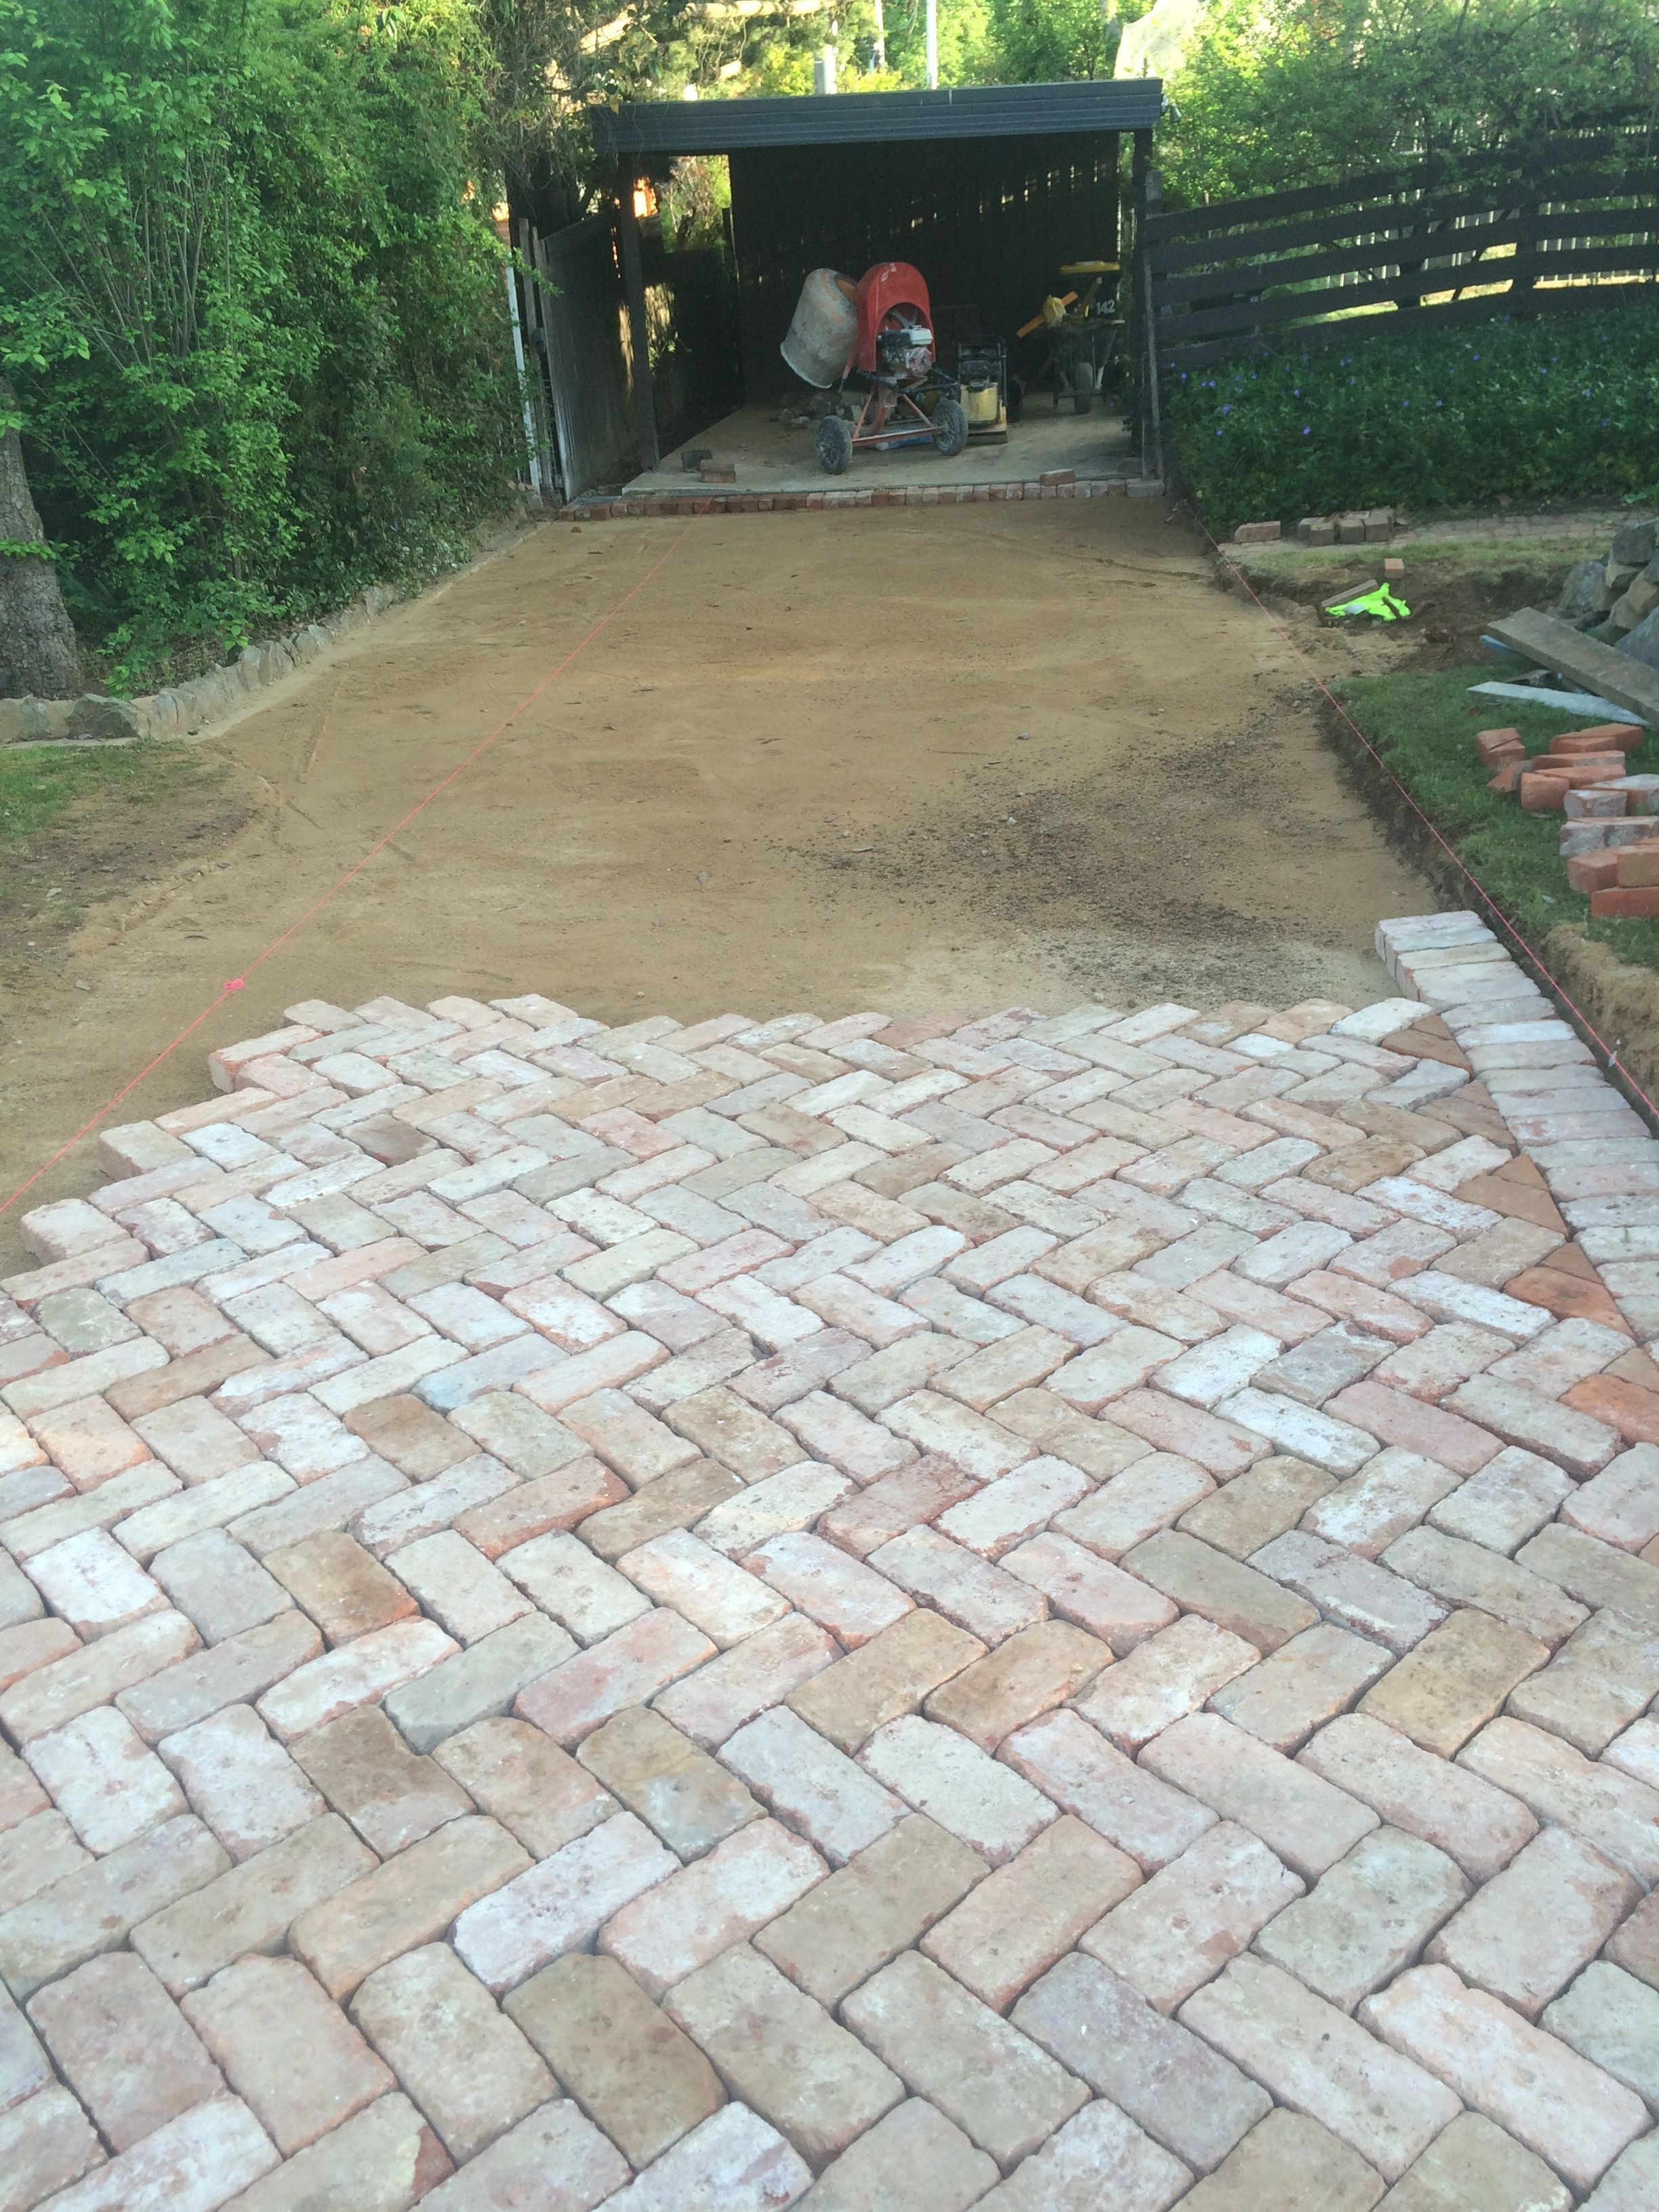 medford retaining pavers grills moorestown mt laurel patio kitchen for paver walls driveway walkway outdoor